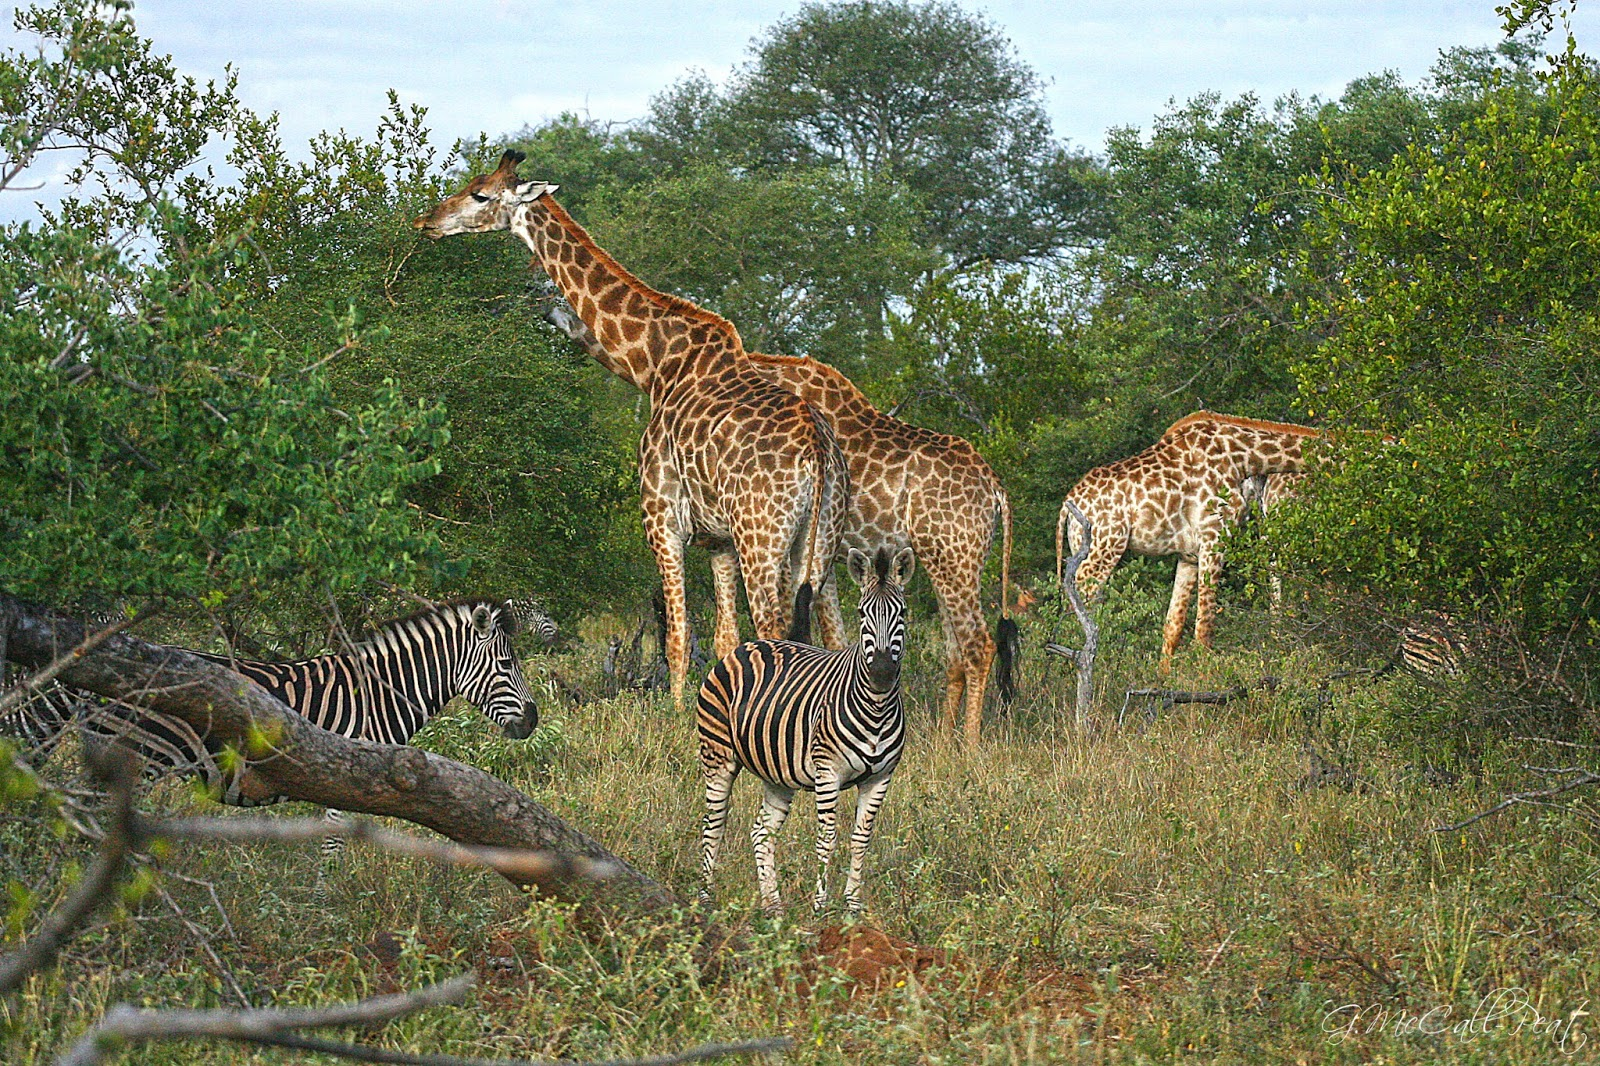 zebras and giraffes - photo #18